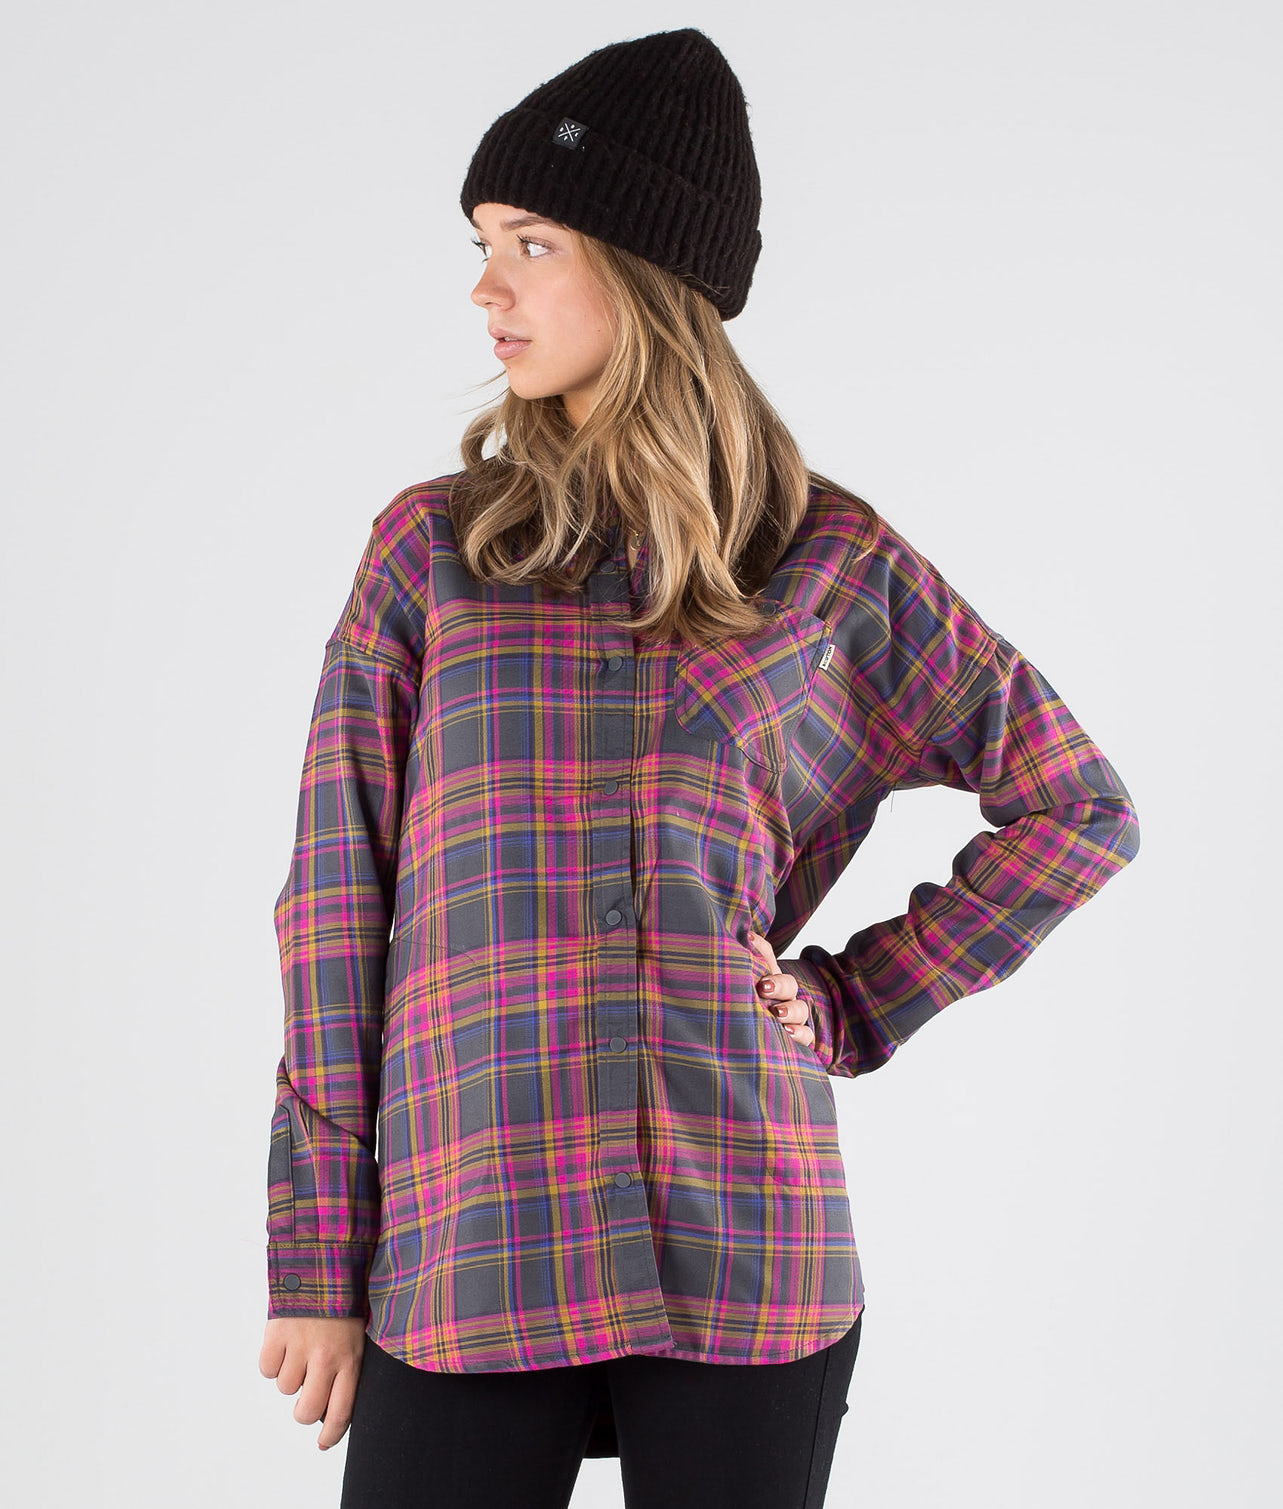 Buy Grace Tech Flanel Shirt from Burton at Ridestore.com - Always free shipping, free returns and 30 days money back guarantee